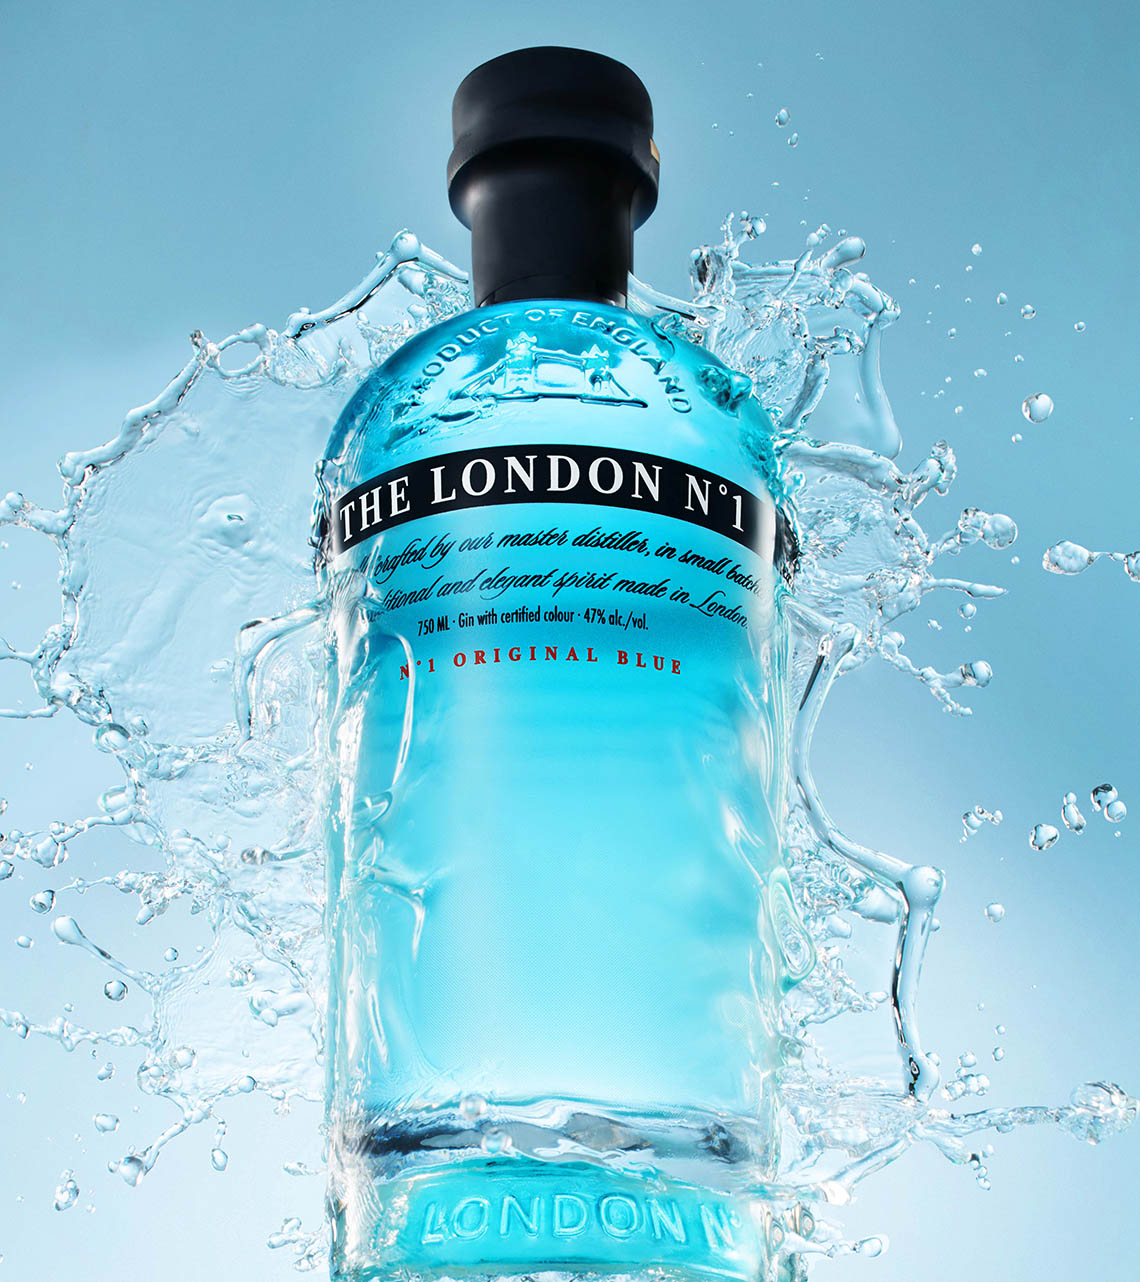 New-york-Liquid-phtographer-Beverage-phtotography-gin-splash